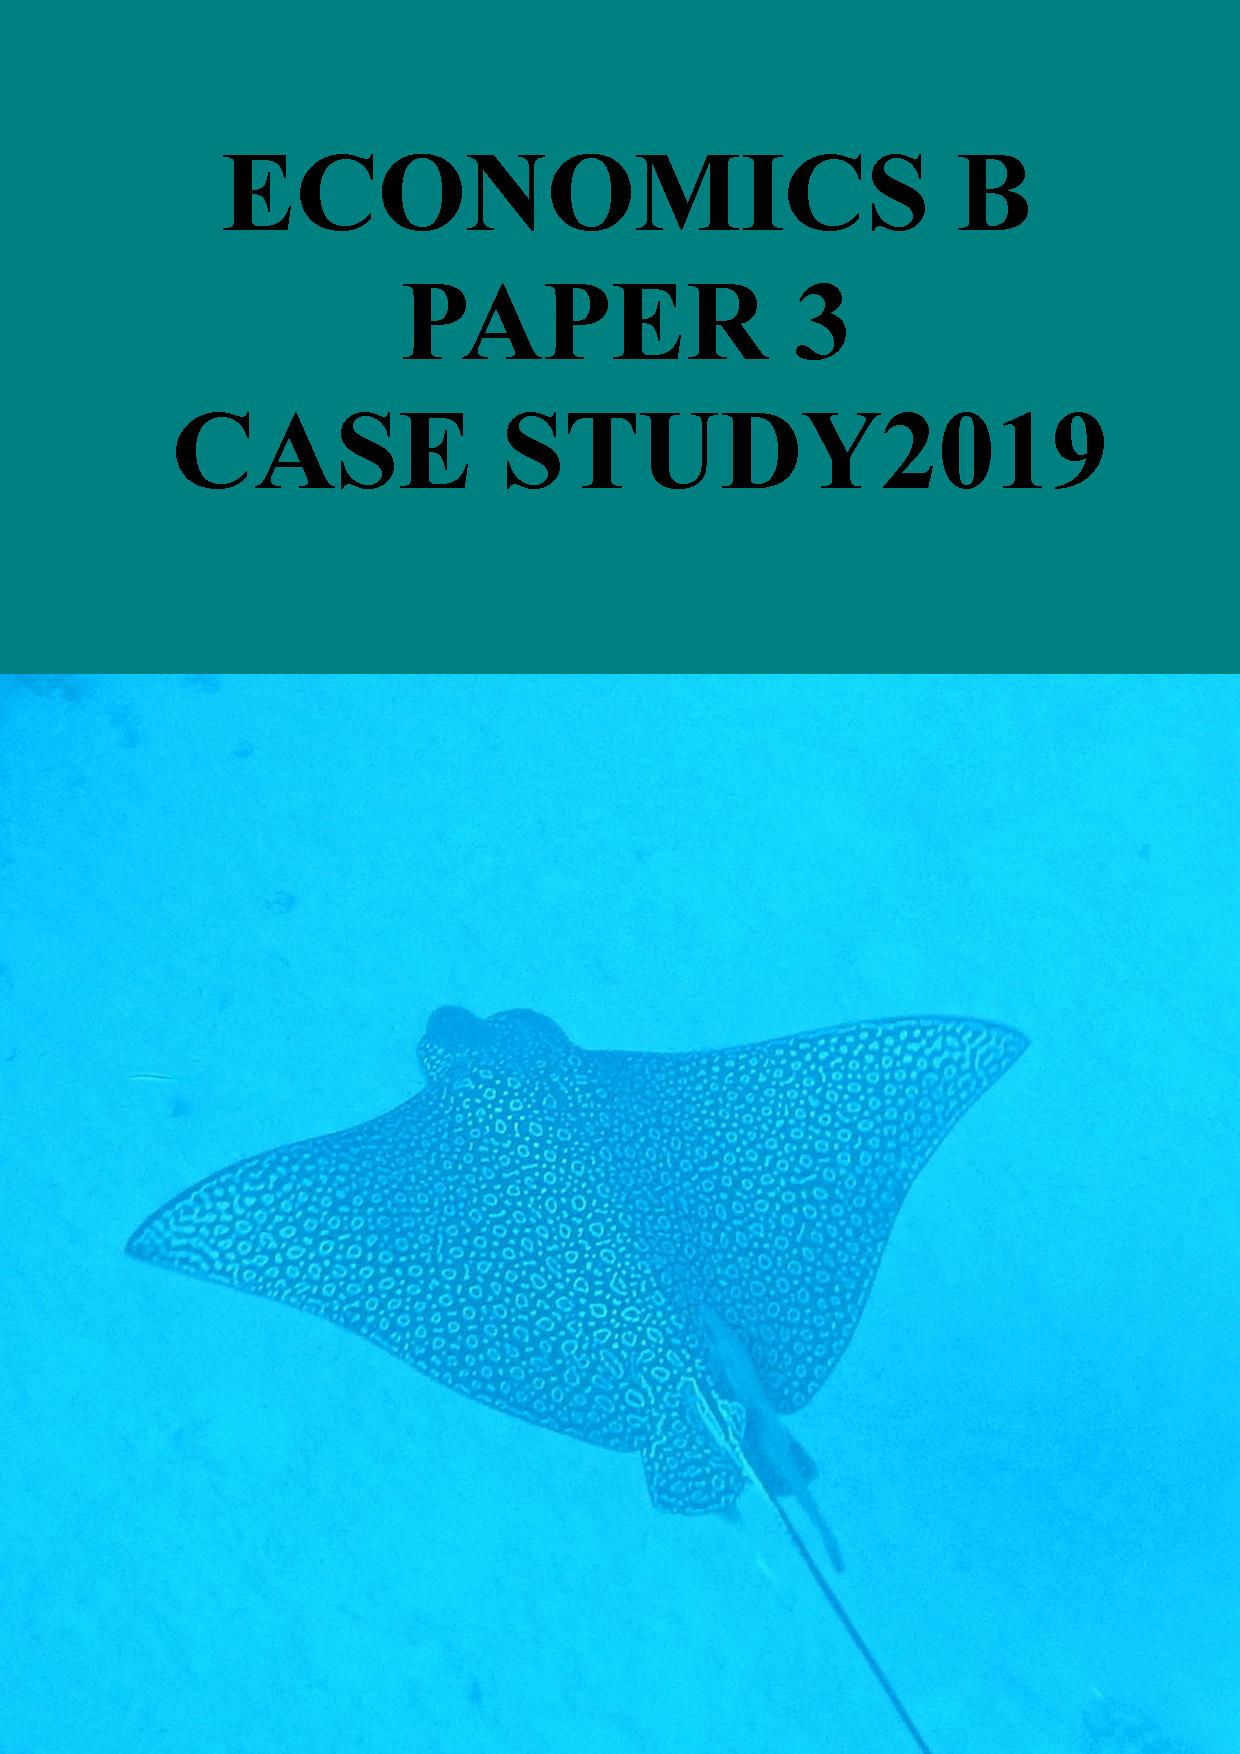 Paper 3 Case Study 2019 edition